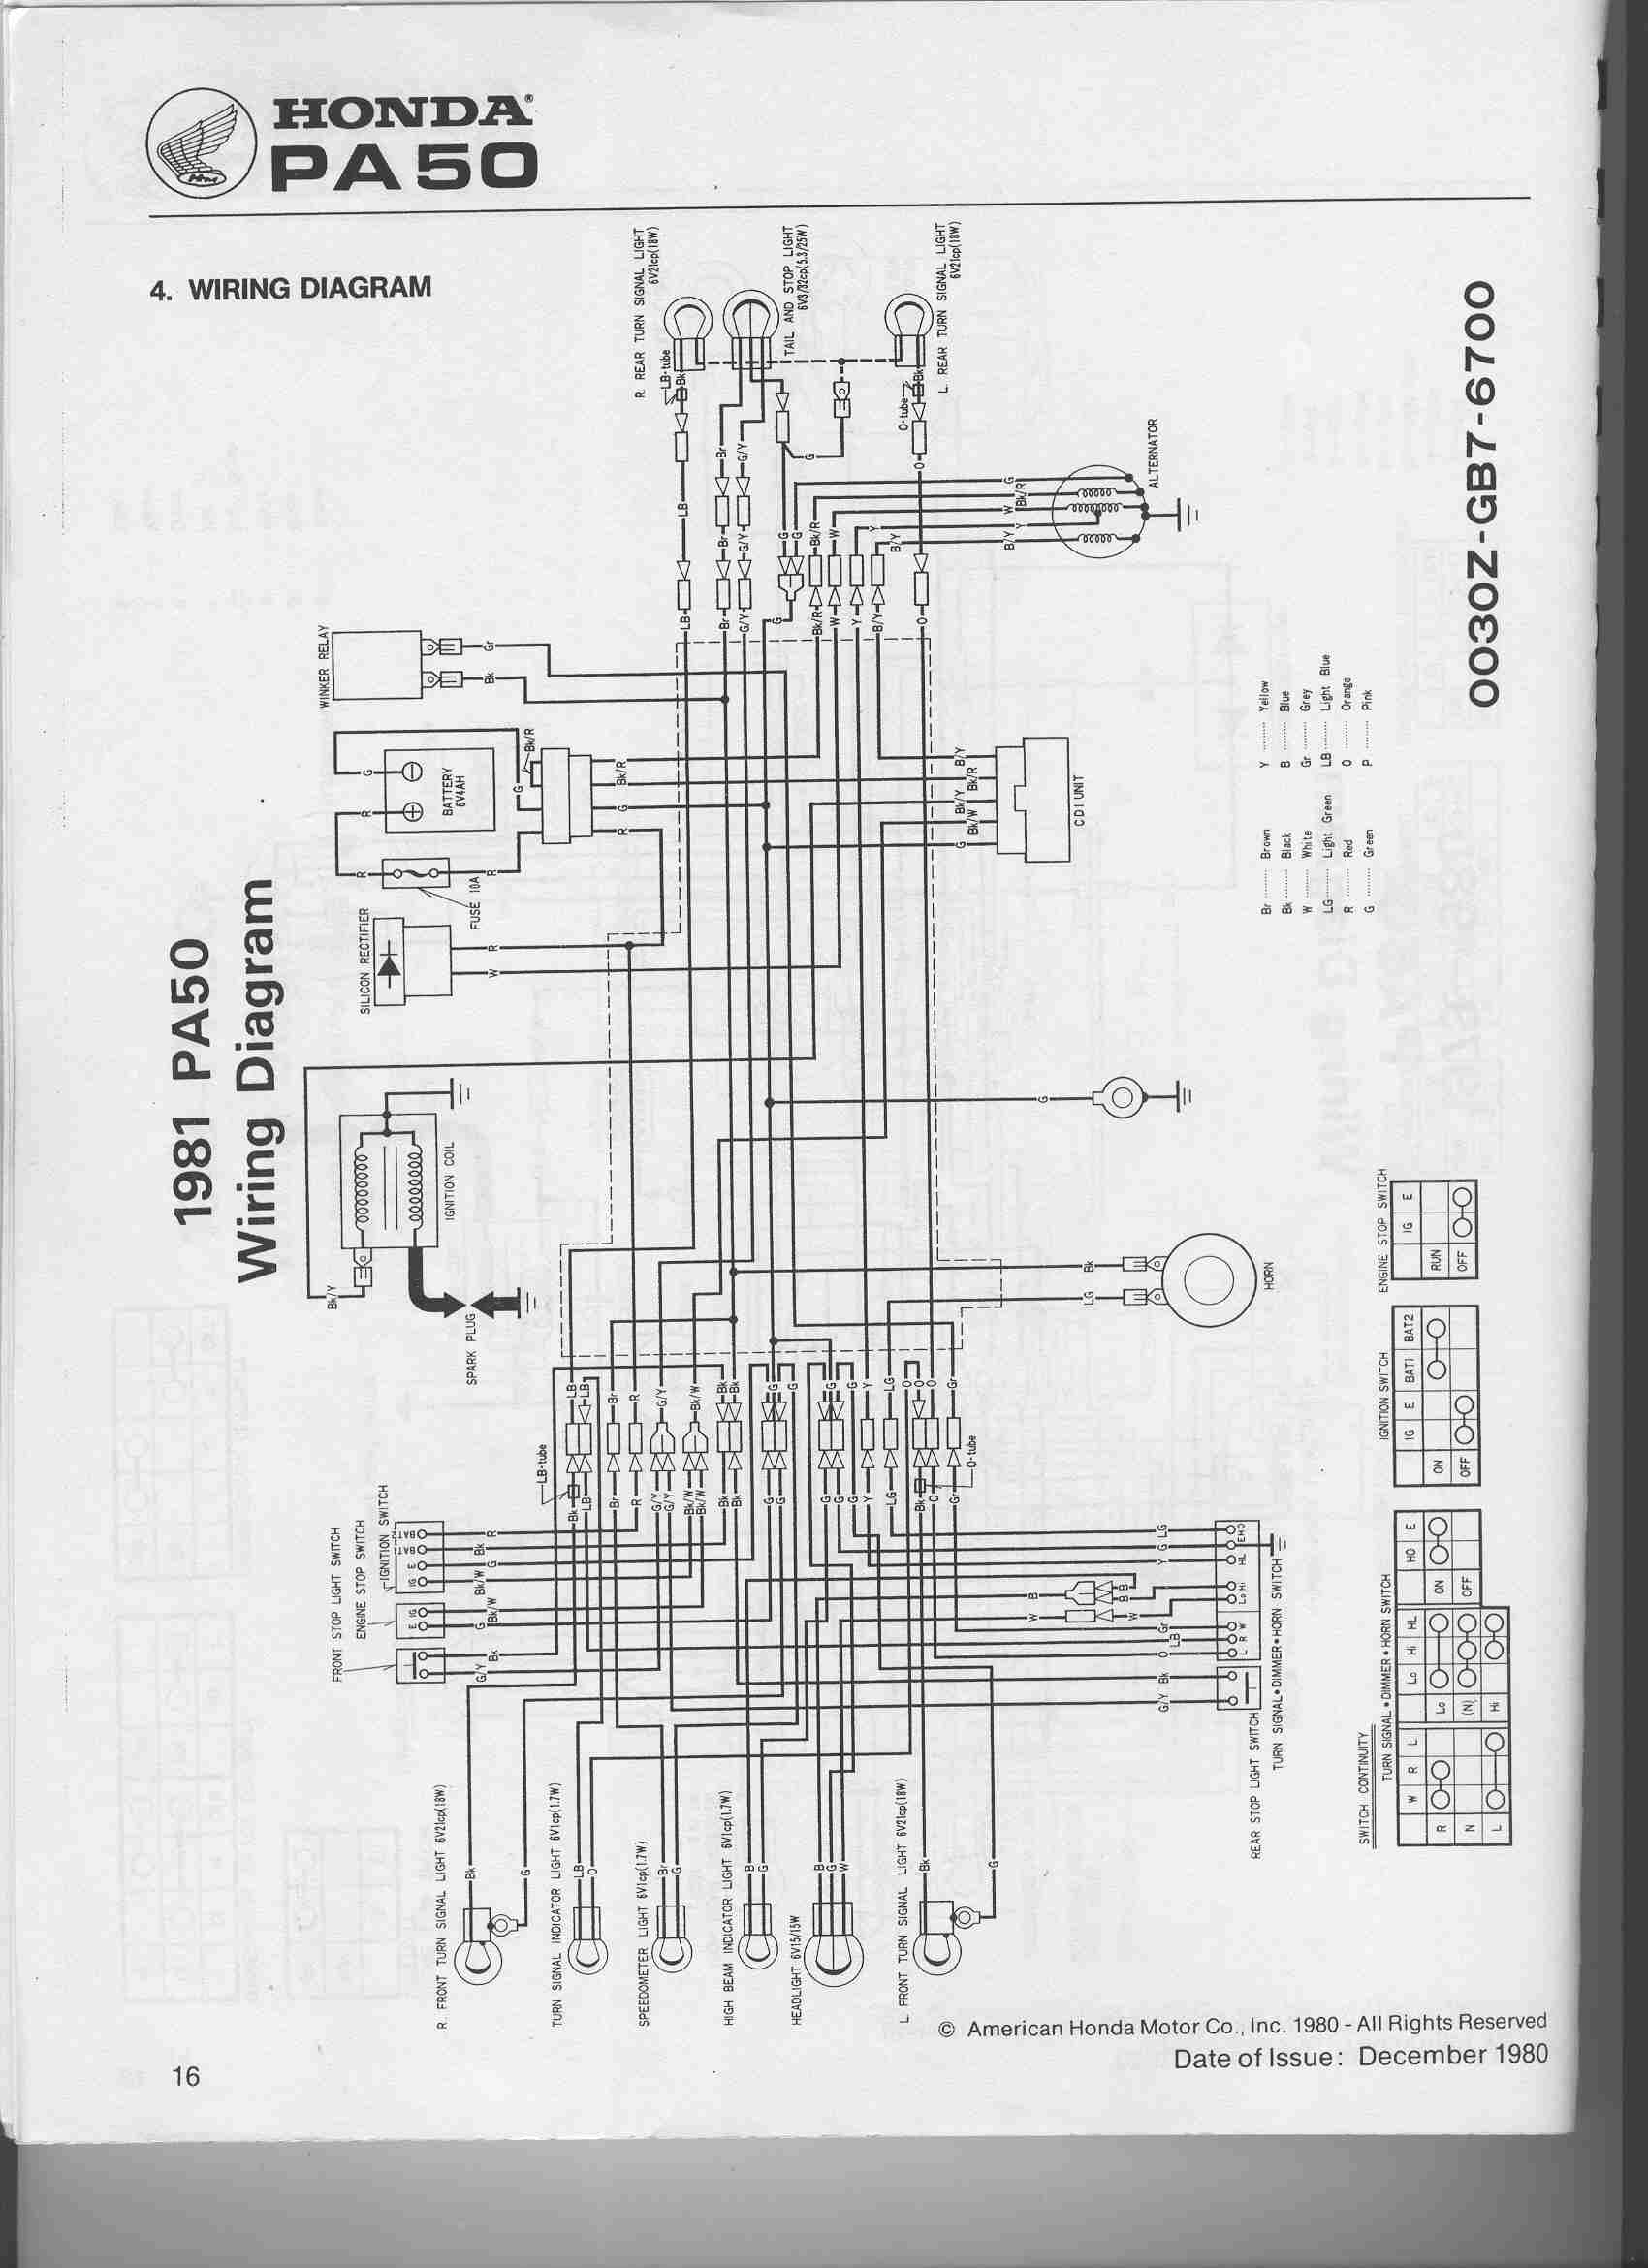 1283014674_81_wiring_diagram.jpg